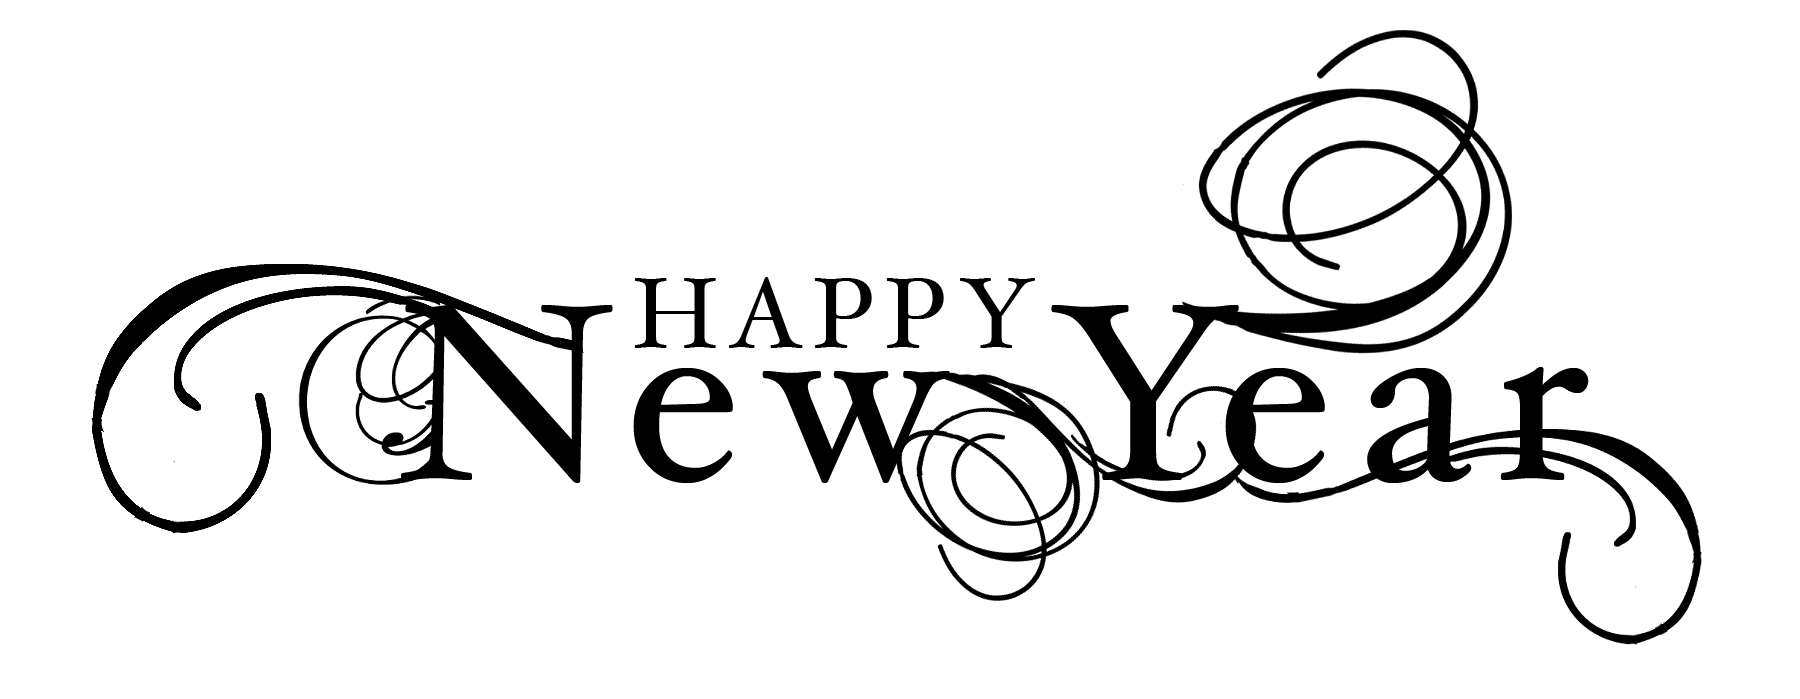 Black and white new year clip art merry christmas and happy new black and white new year clip art voltagebd Images